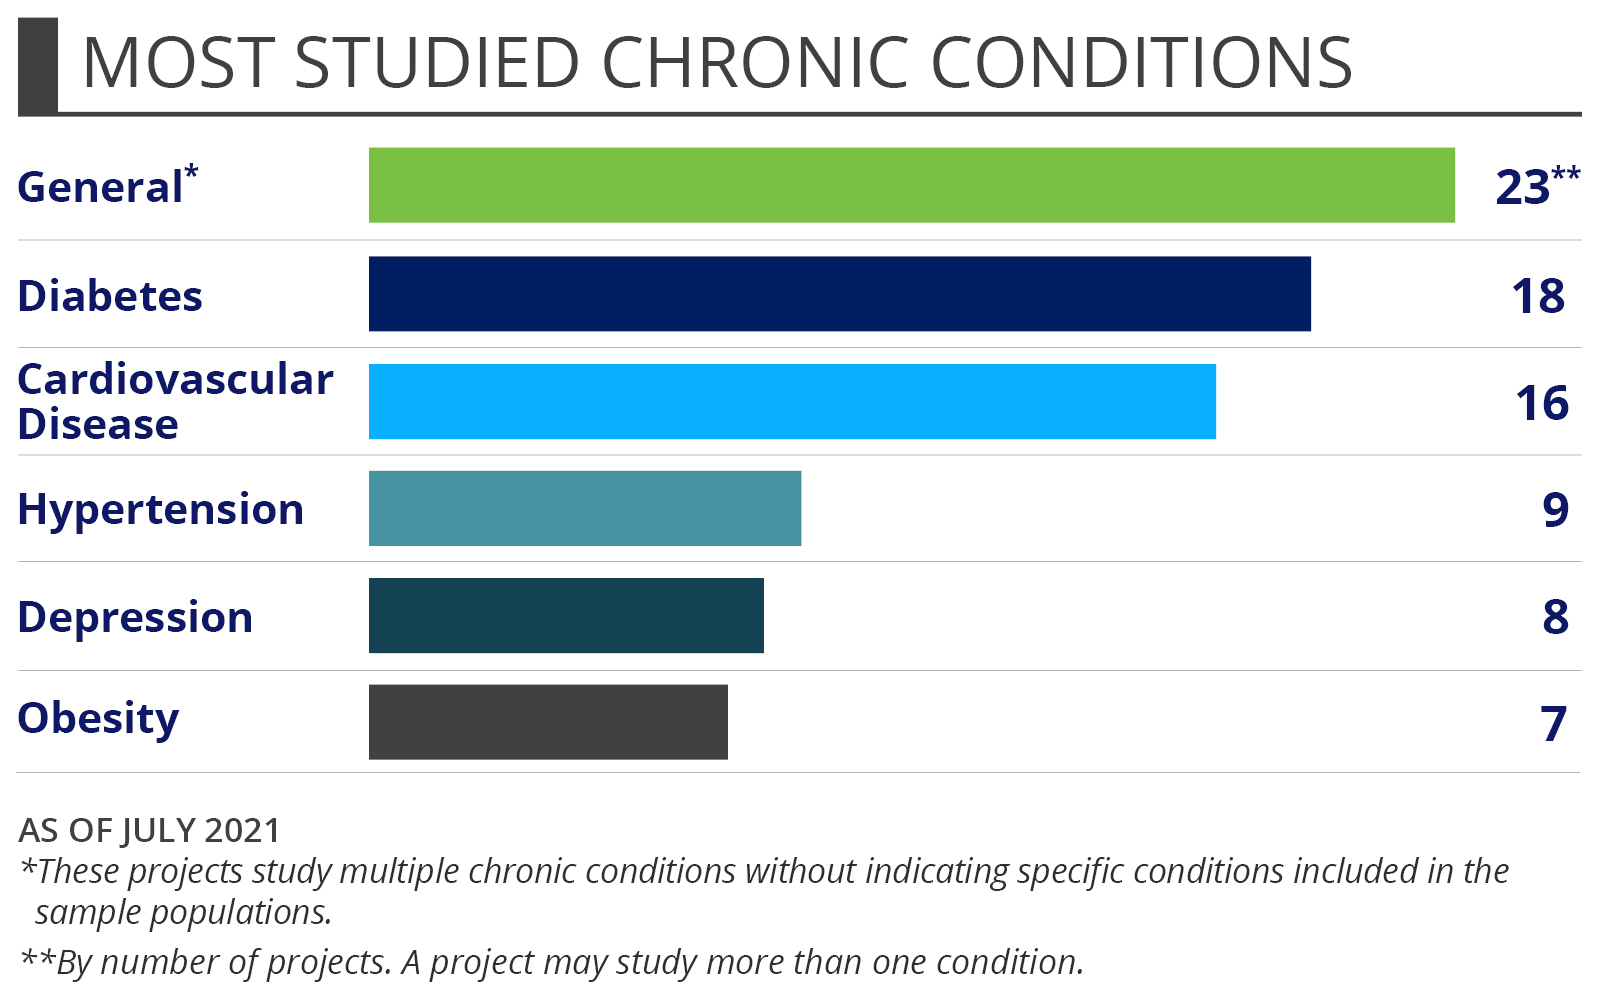 Most Studied Chronic Conditions for Multiple Chronic Conditions - General* (20*) Cardiovascular Disease (16) Diabetes (15) Hypertension (8) Obesity (6) Depression (6) As of November 2017.